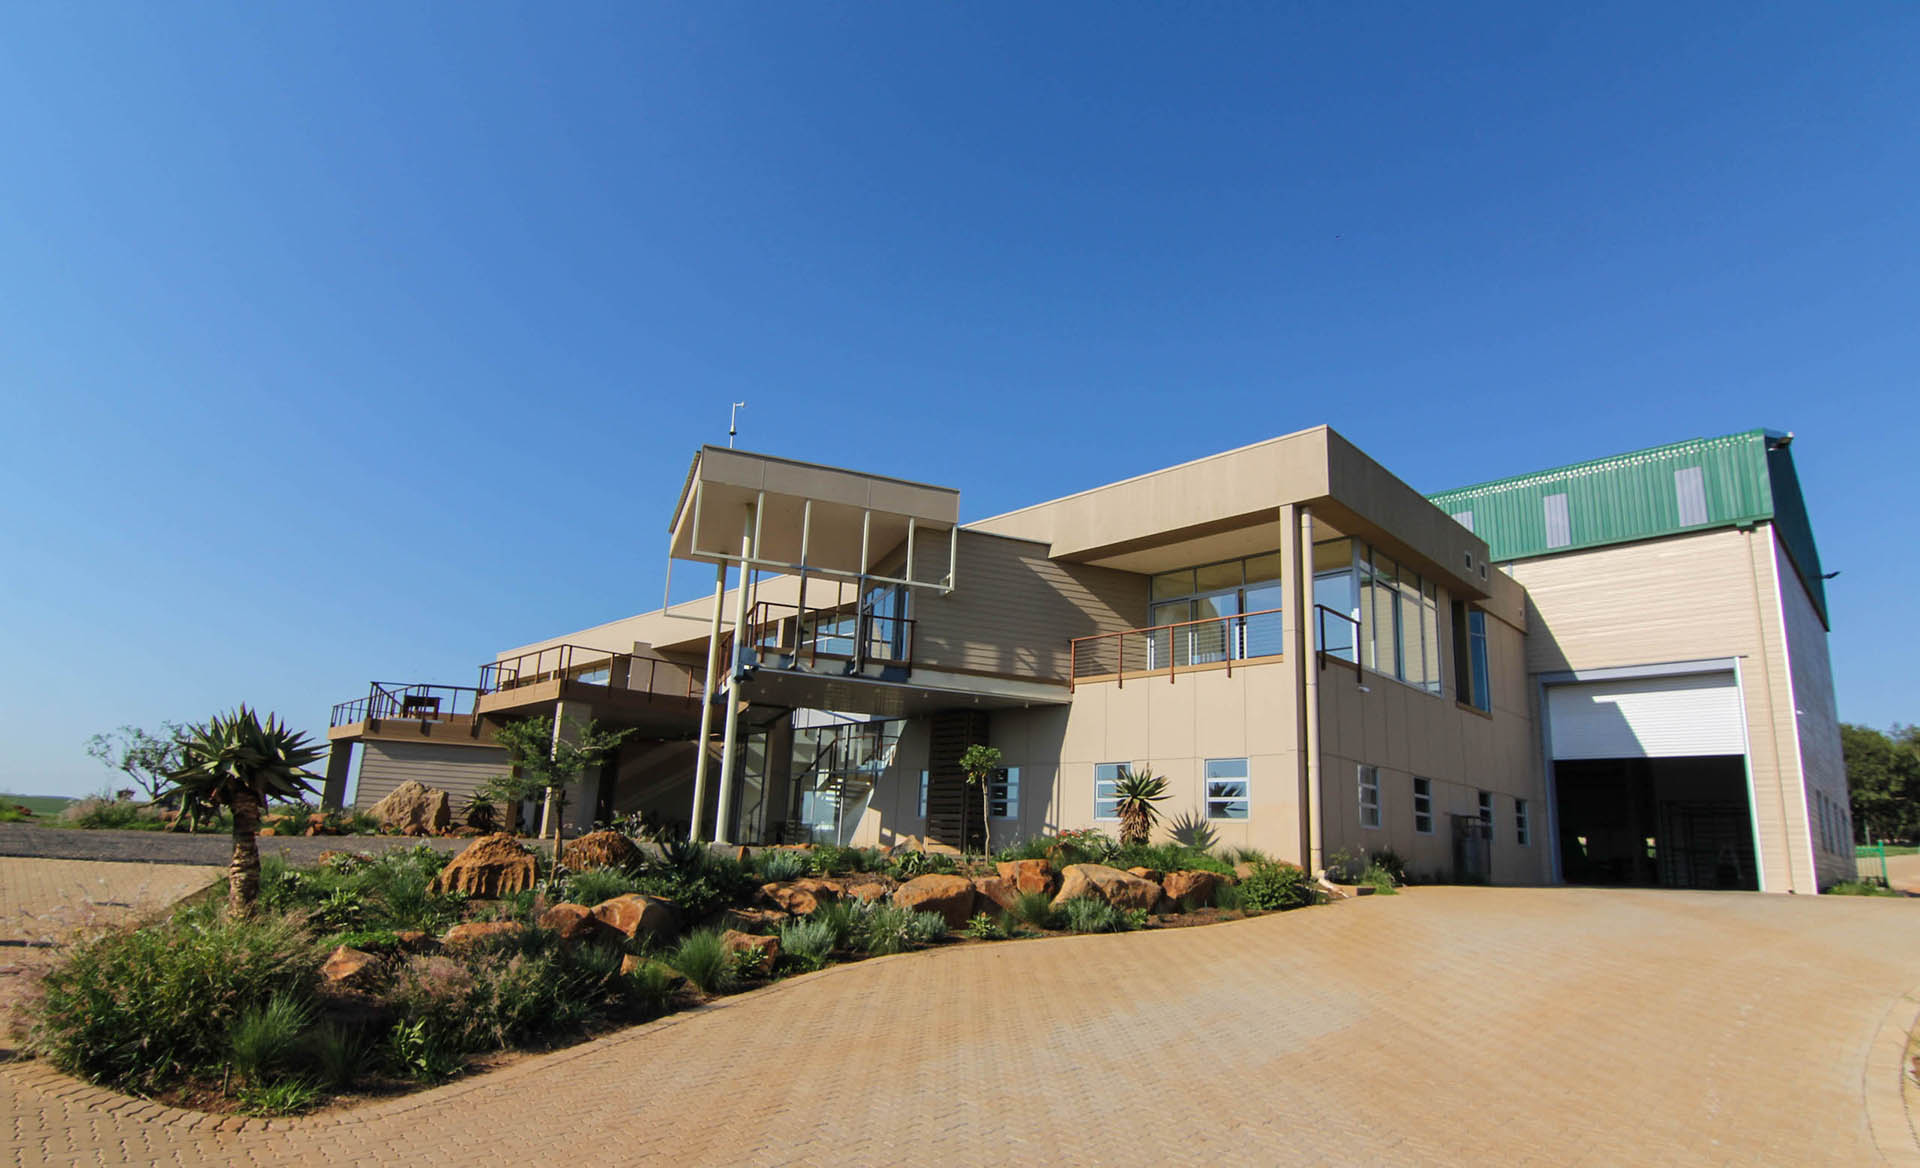 local is lekker shospec dabmar manufacturing-plant-LSF-project-quality-shopfitting-light-steel-frame-building-pmb-kzn